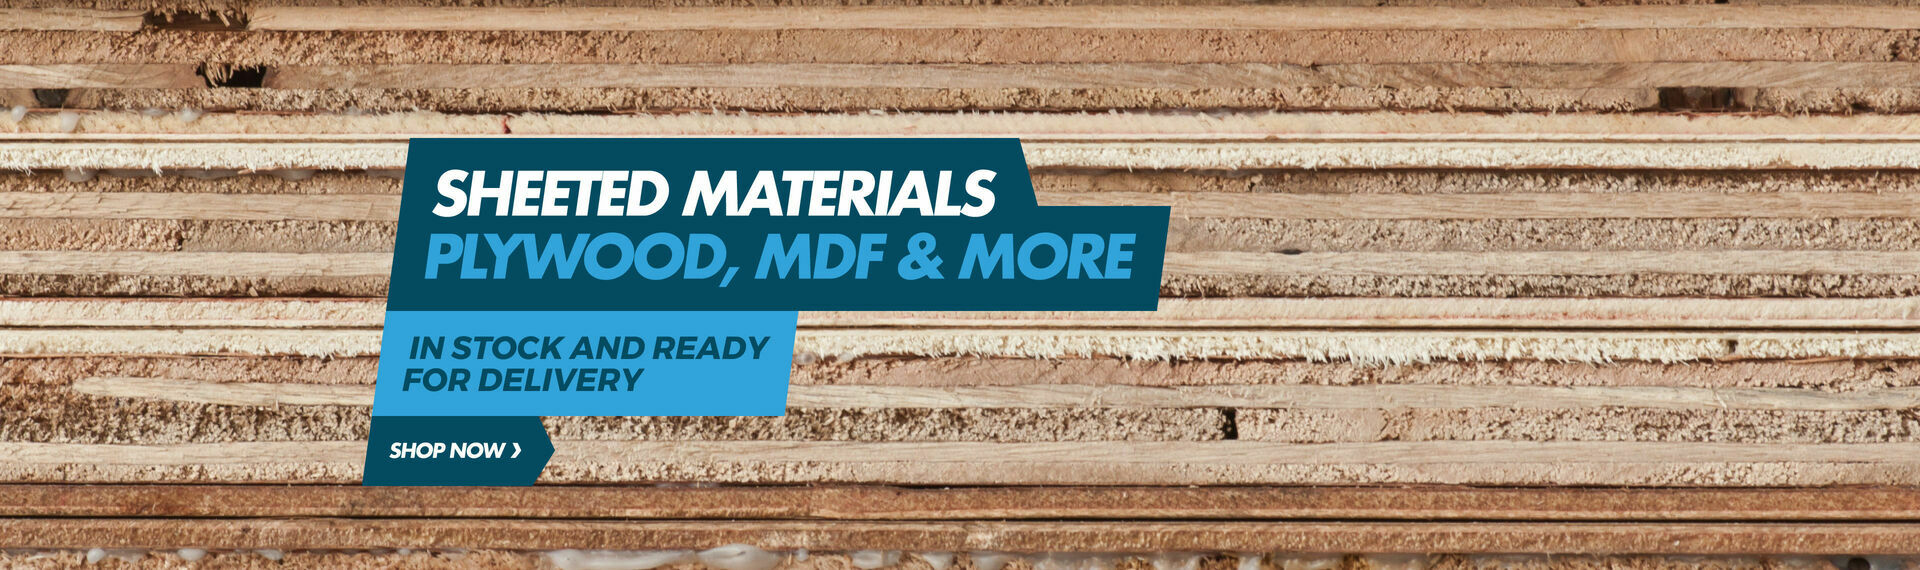 Sheeted Materials